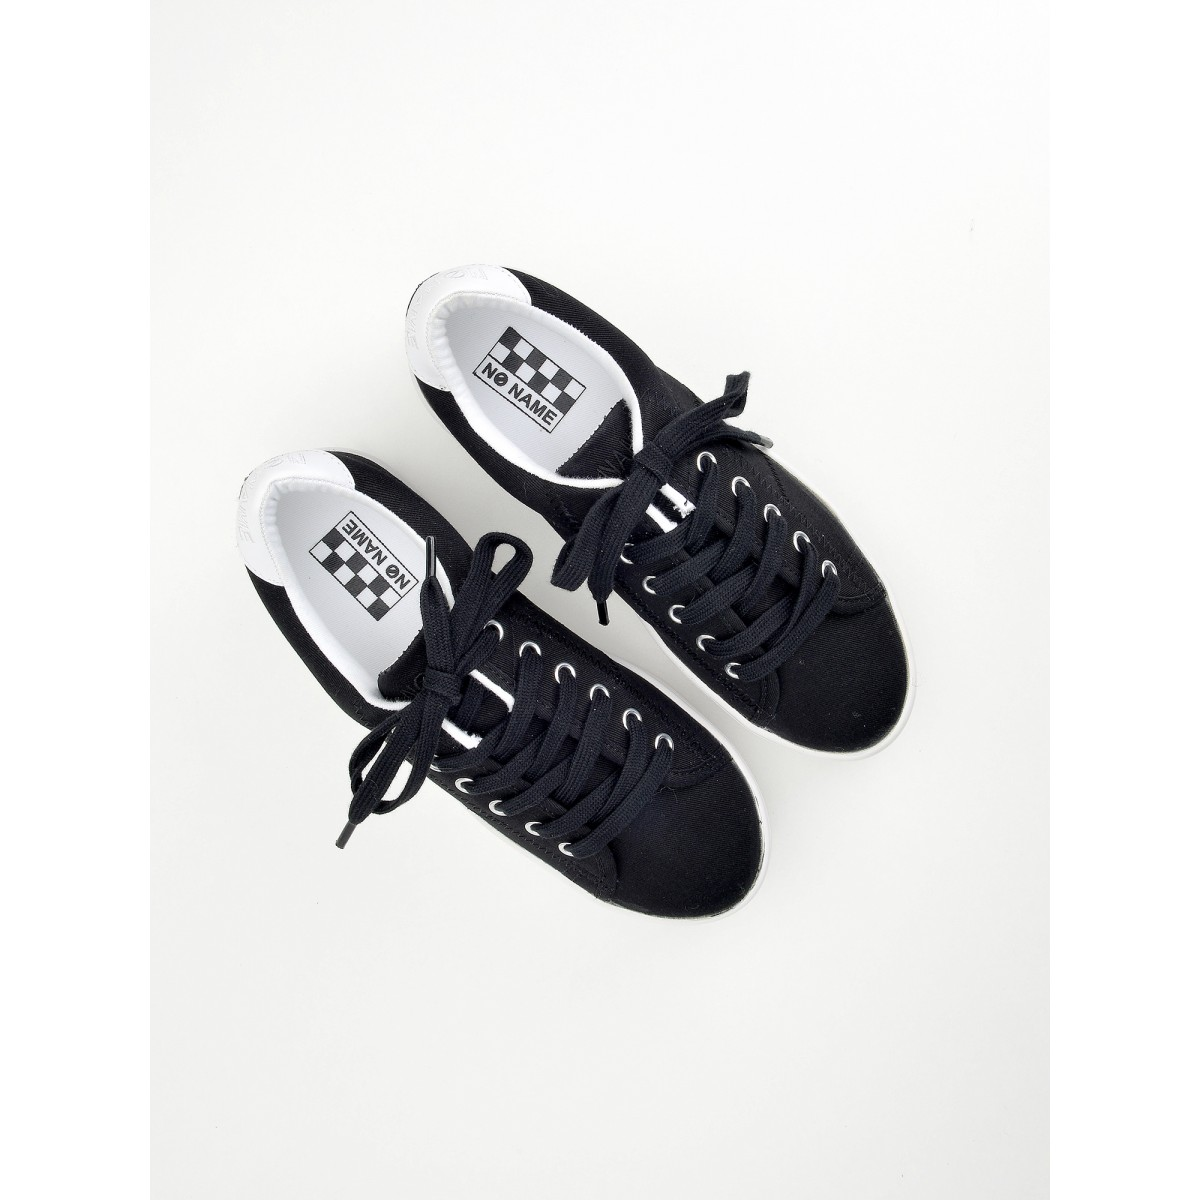 No Name Plato Sneaker - Canvas - Black Fox White